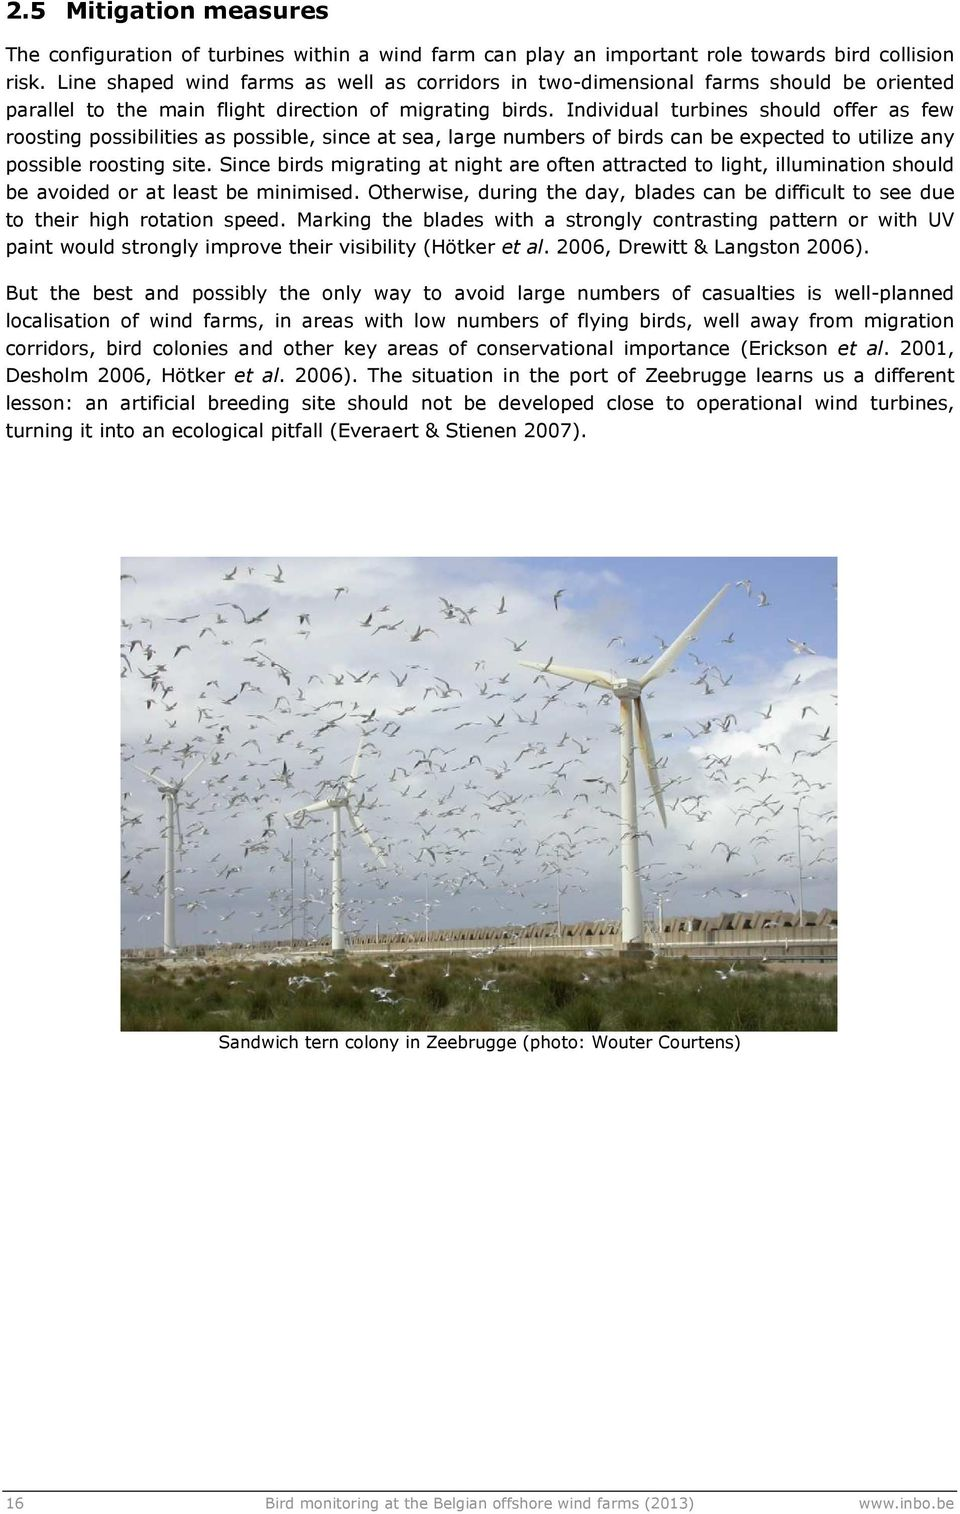 Individual turbines should offer as few roosting possibilities as possible, since at sea, large numbers of birds can be expected to utilize any possible roosting site.